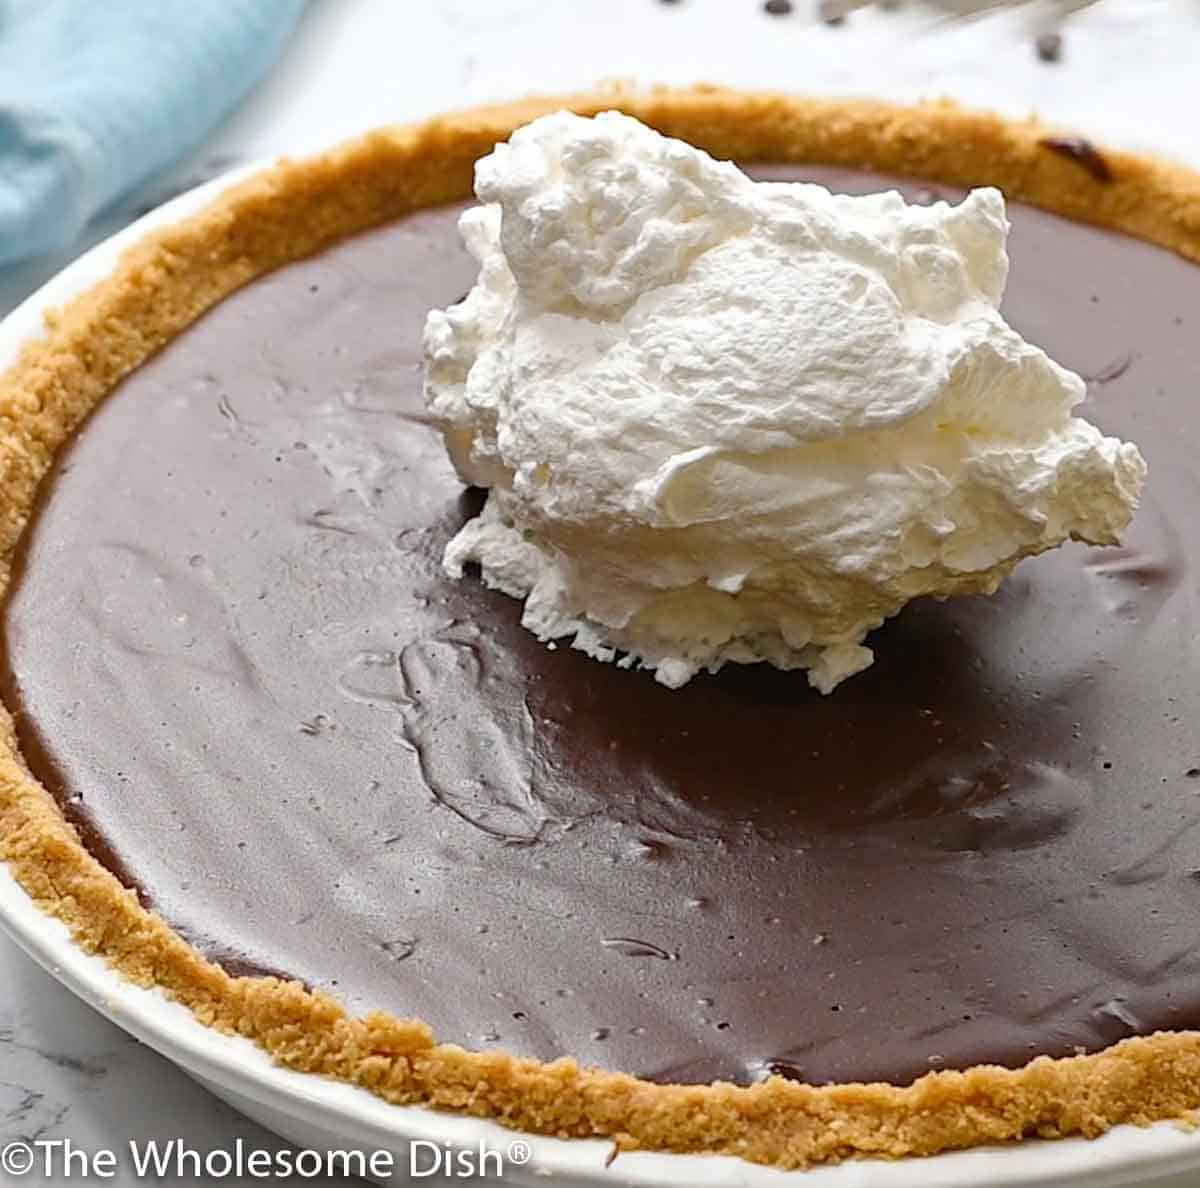 a dollop of whipped cream on top of a cold chocolate cream pie